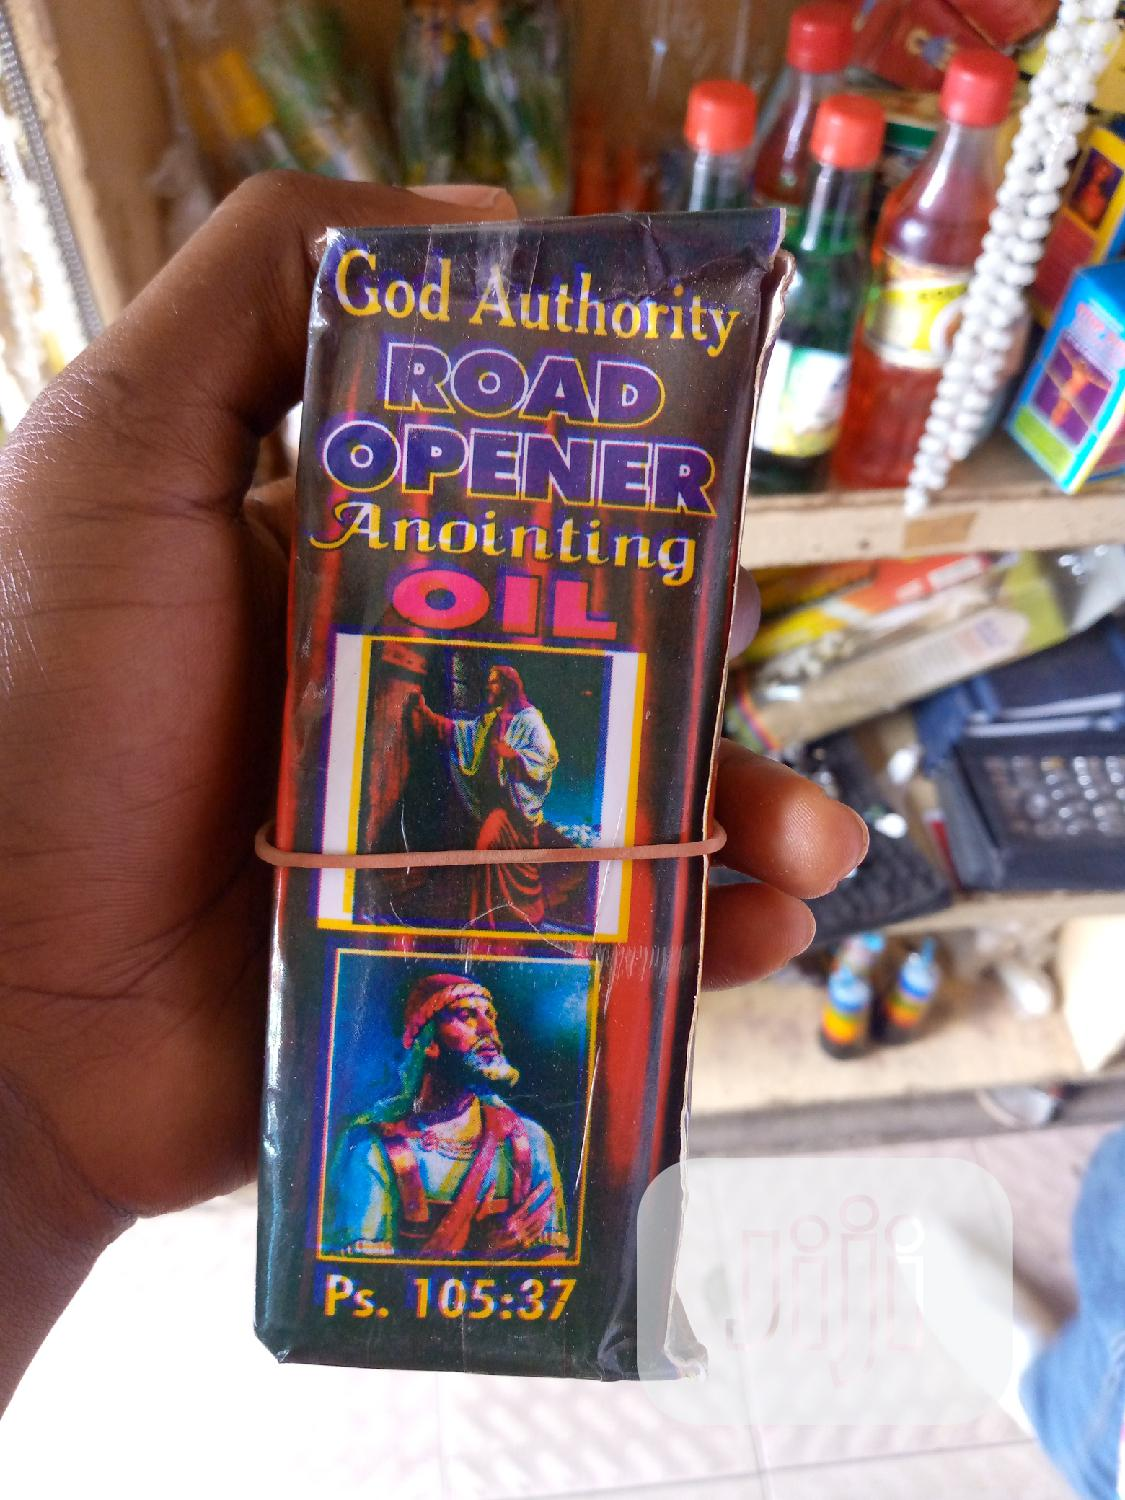 Road Opener Anointing Oil